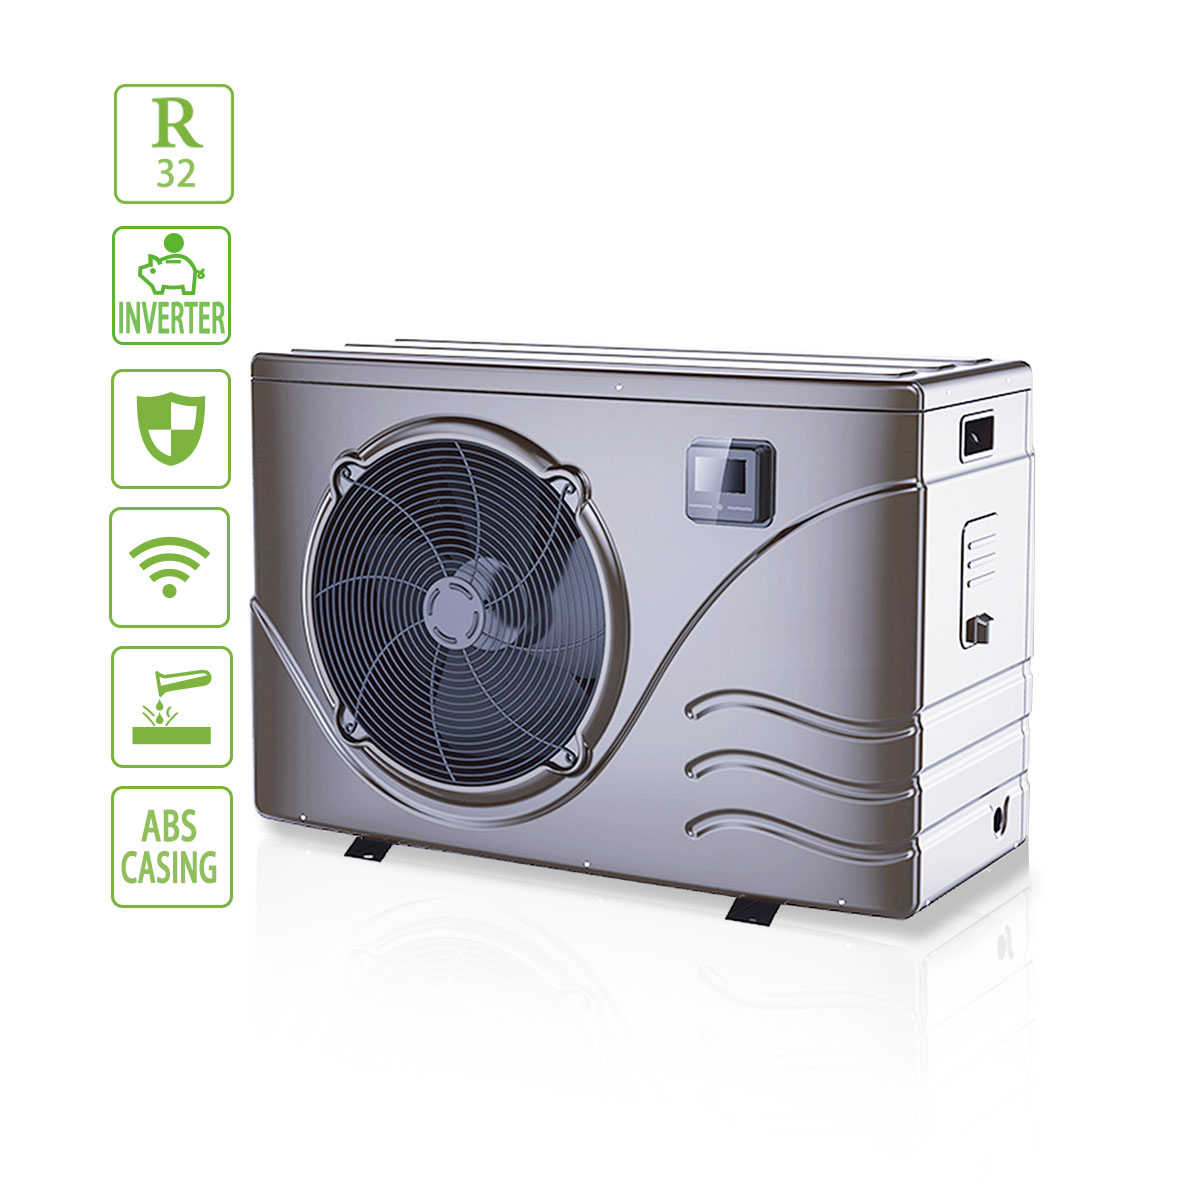 Low Energy Consumption Eco Inverter Swimming Pool Heat Pump